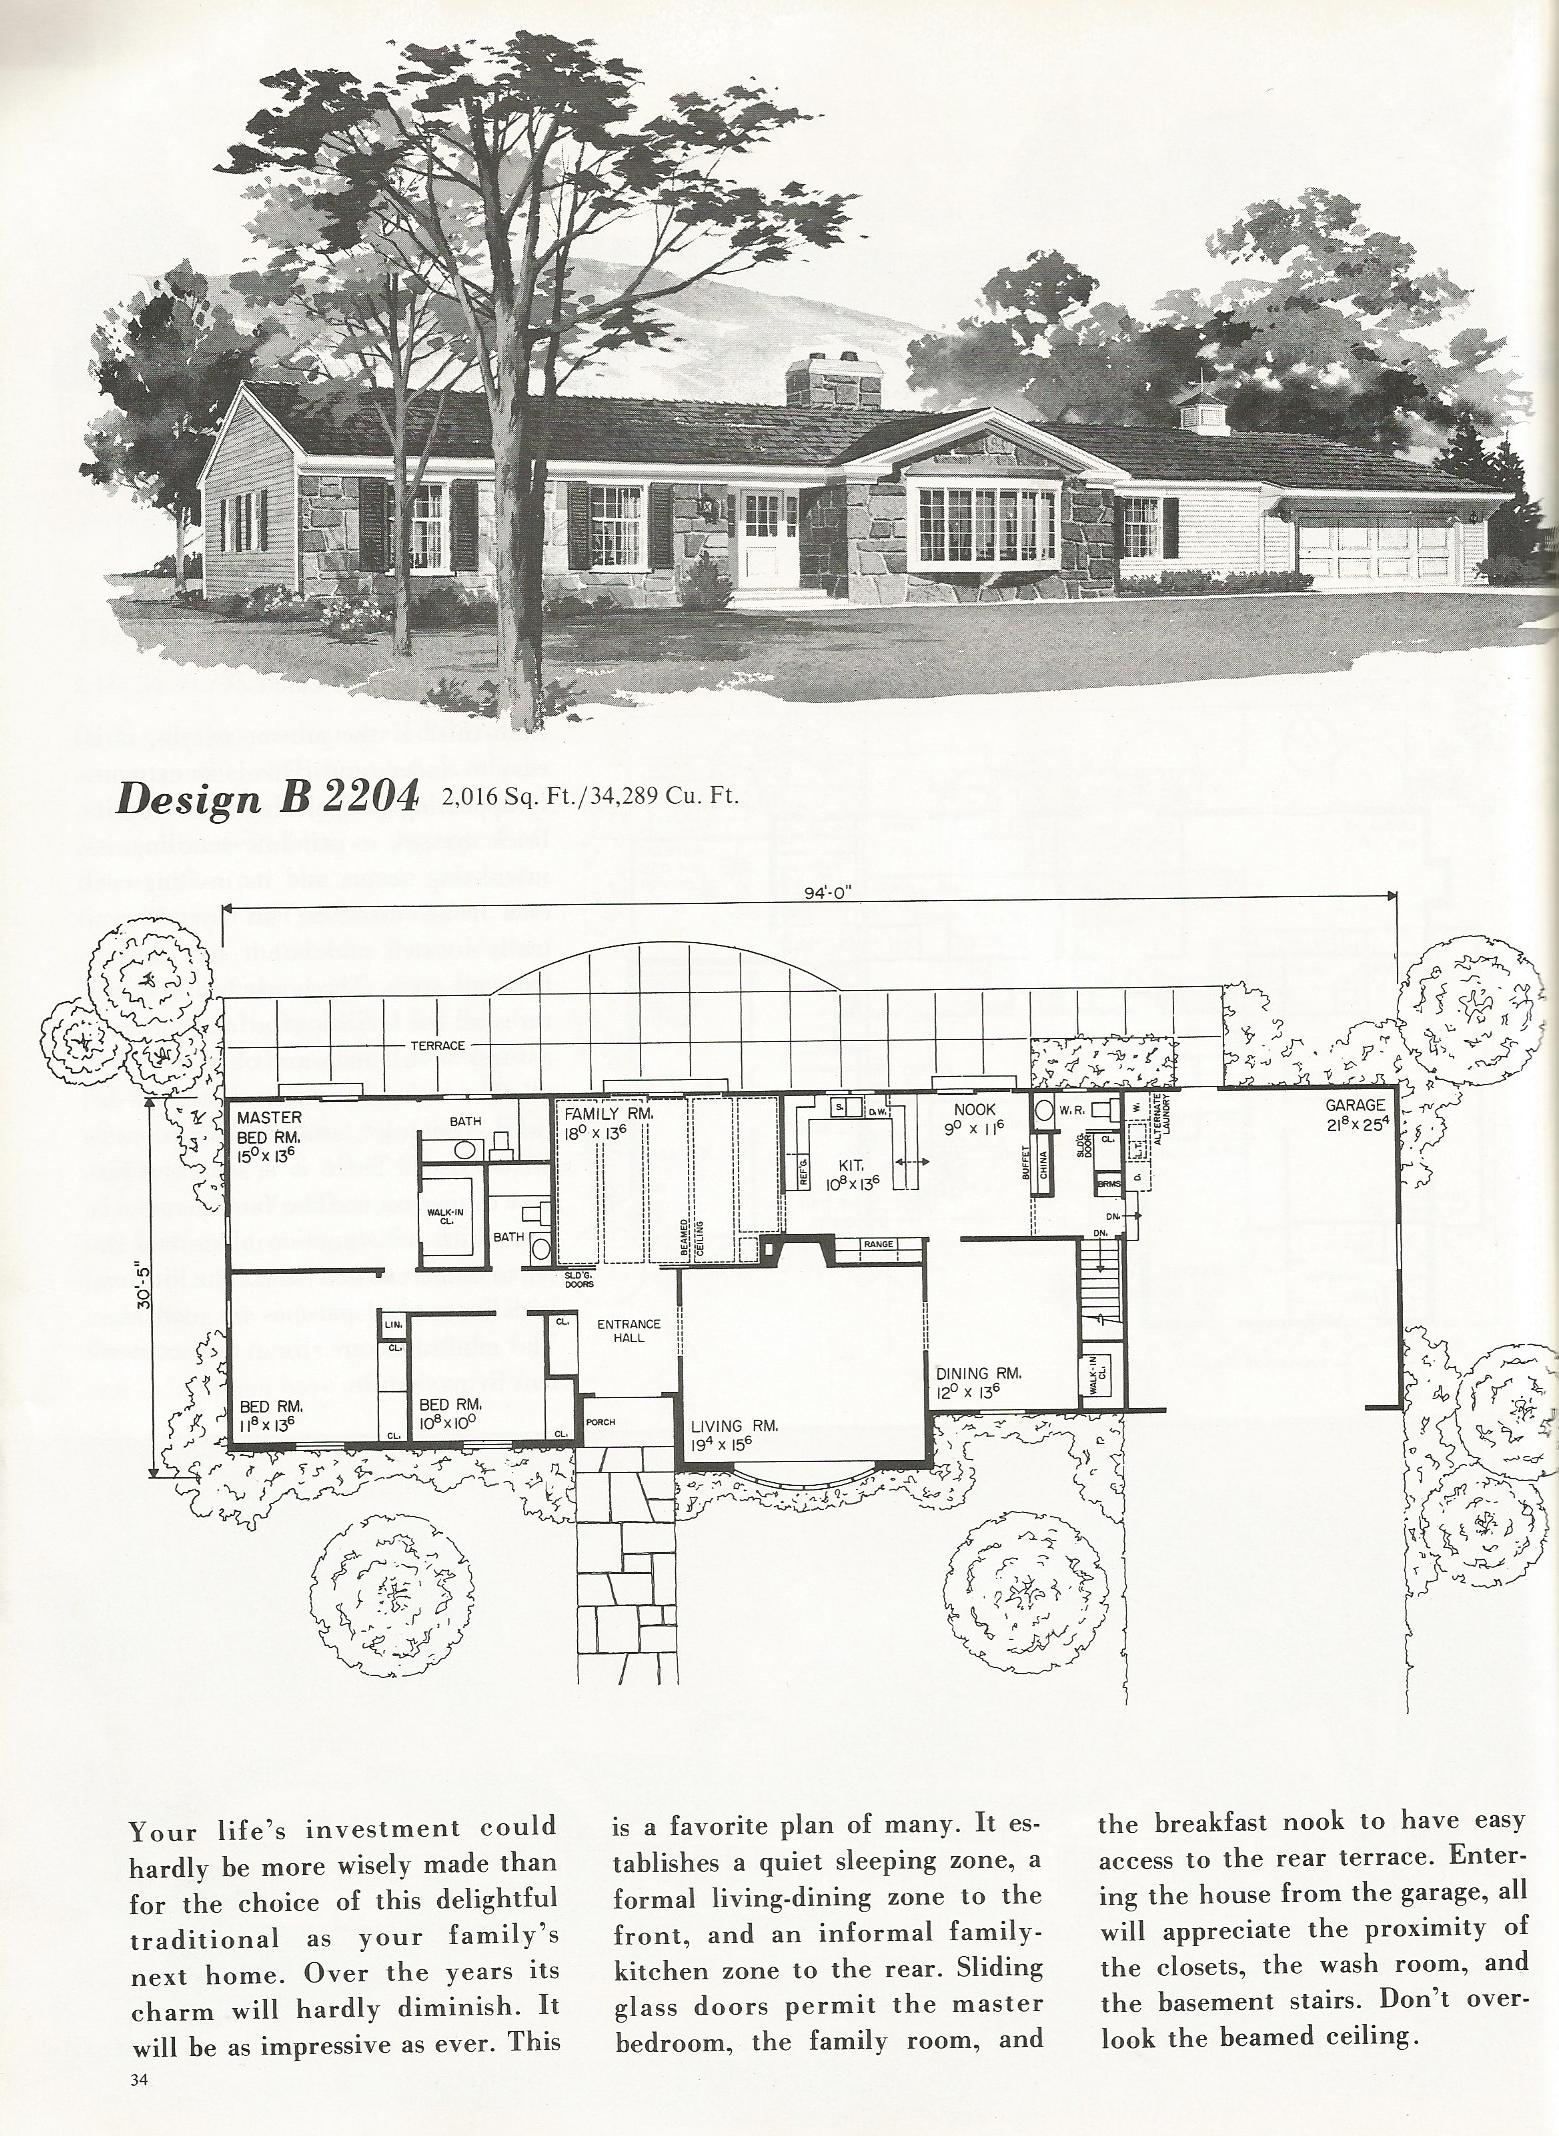 Vintage House Plans 2204 Antique Alter Ego